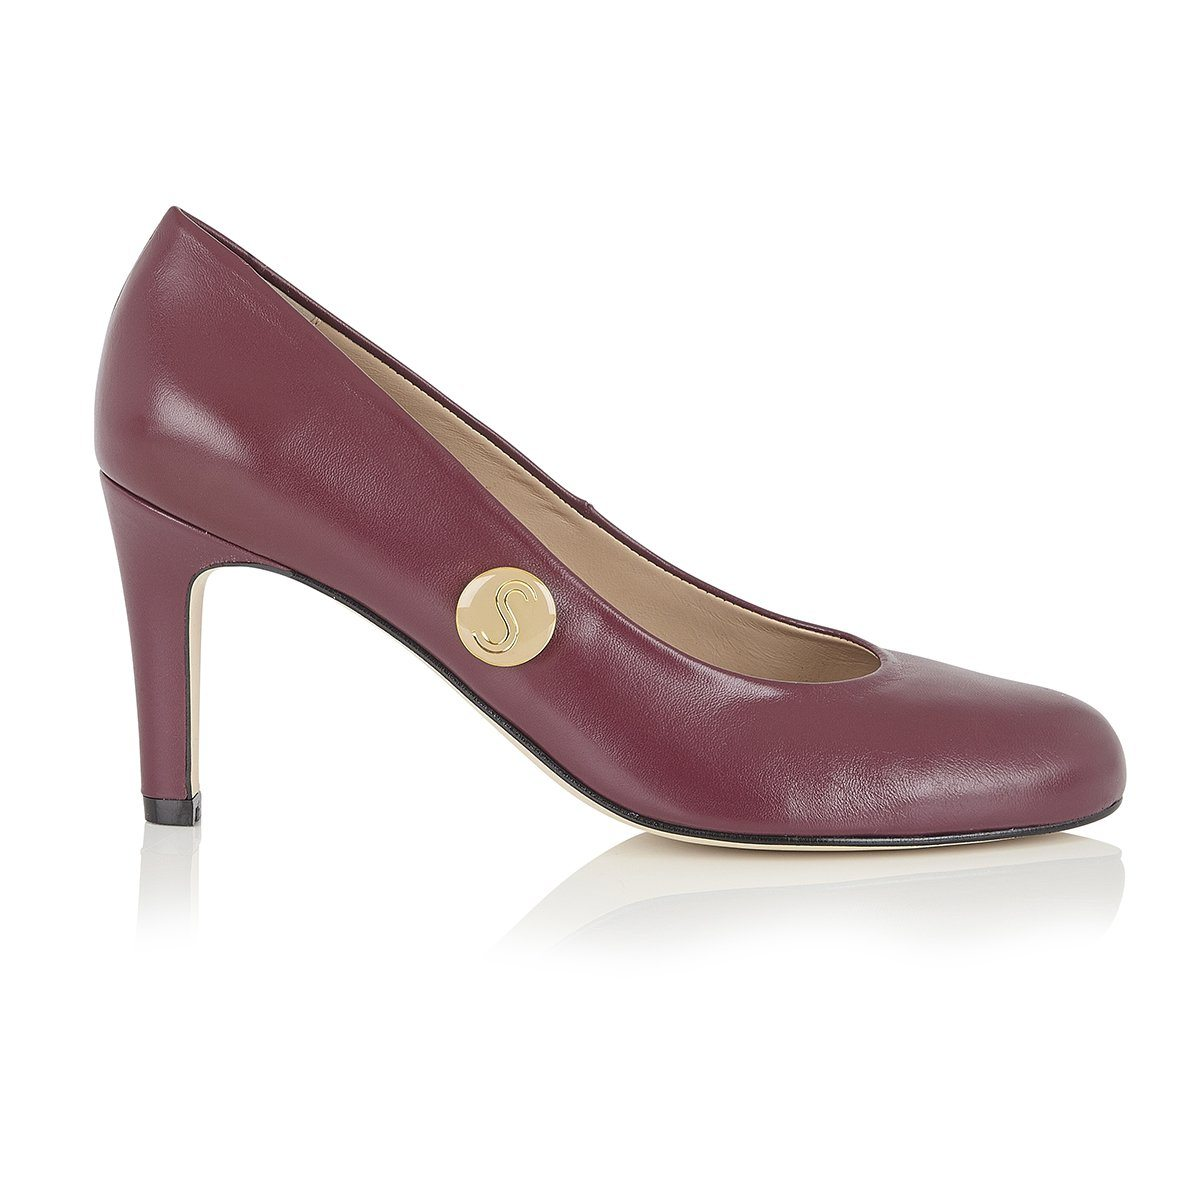 Stand Tall Sister - 18 Hour Heels - Plum Nappa Leather - Shoes by Shaherazad